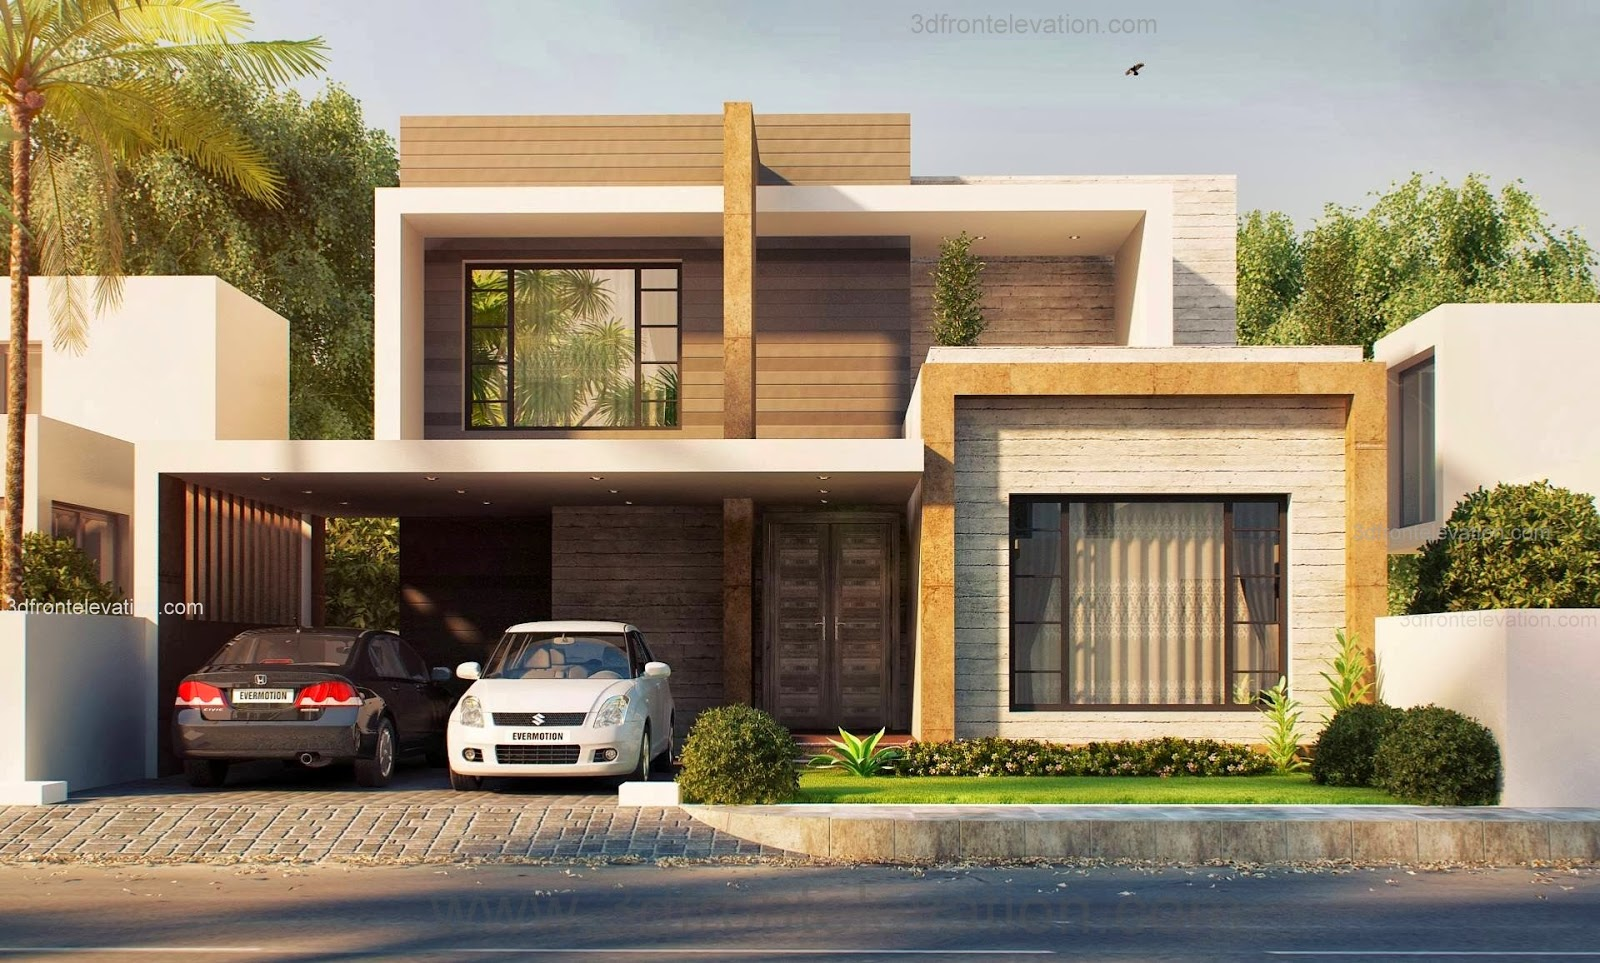 3d front 10 marla modern house plan beautiful latest pakistani design for bahria town - Latest design modern houses ...